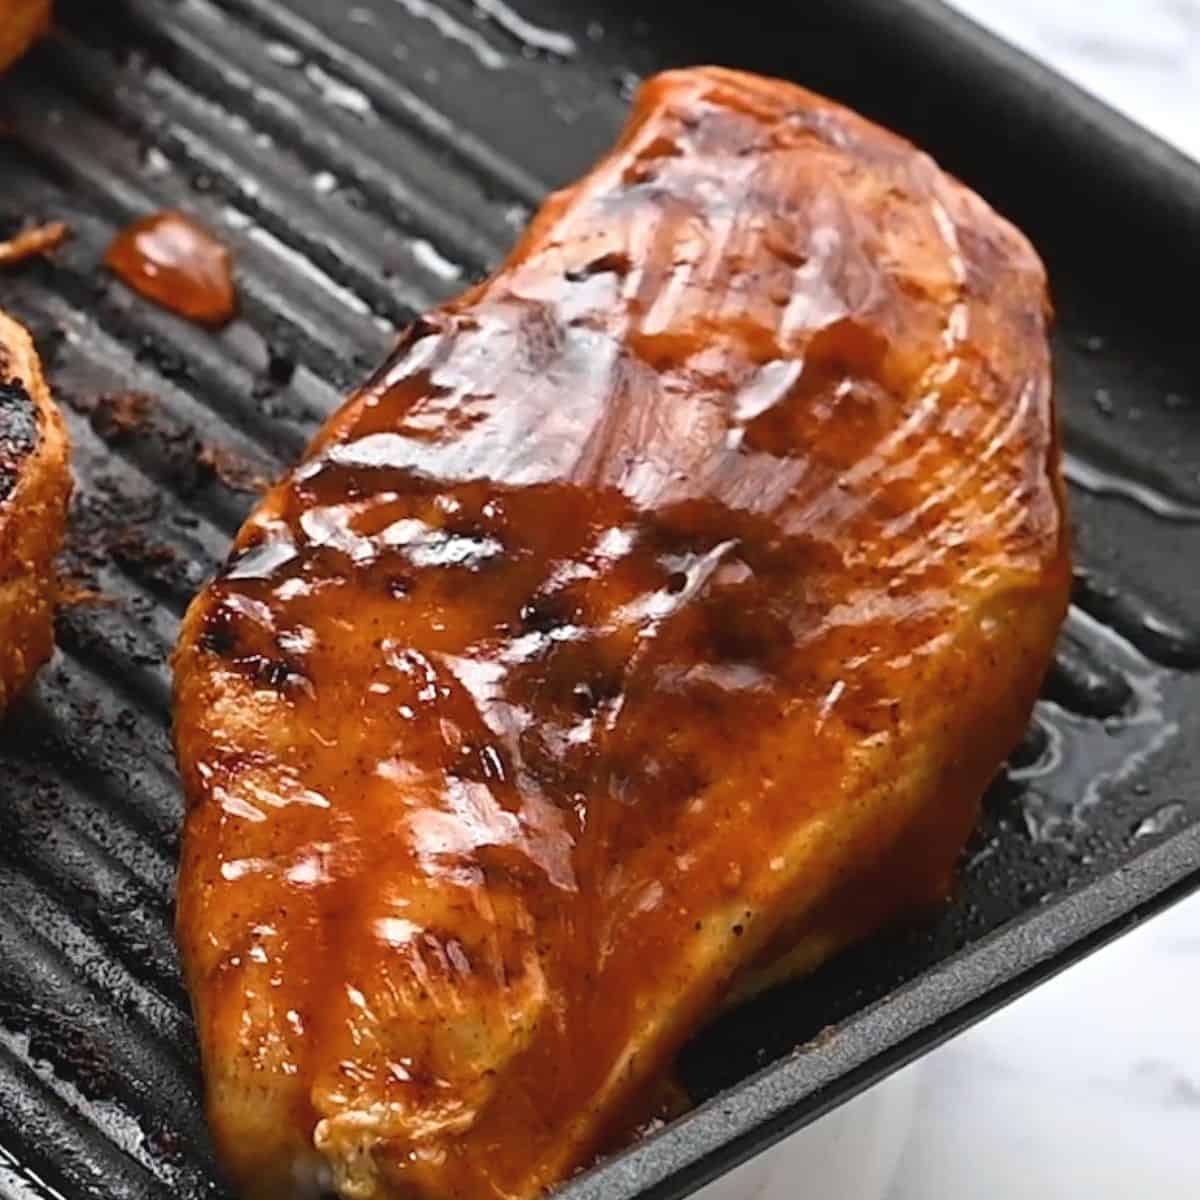 BBQ sauce over chicken breasts.